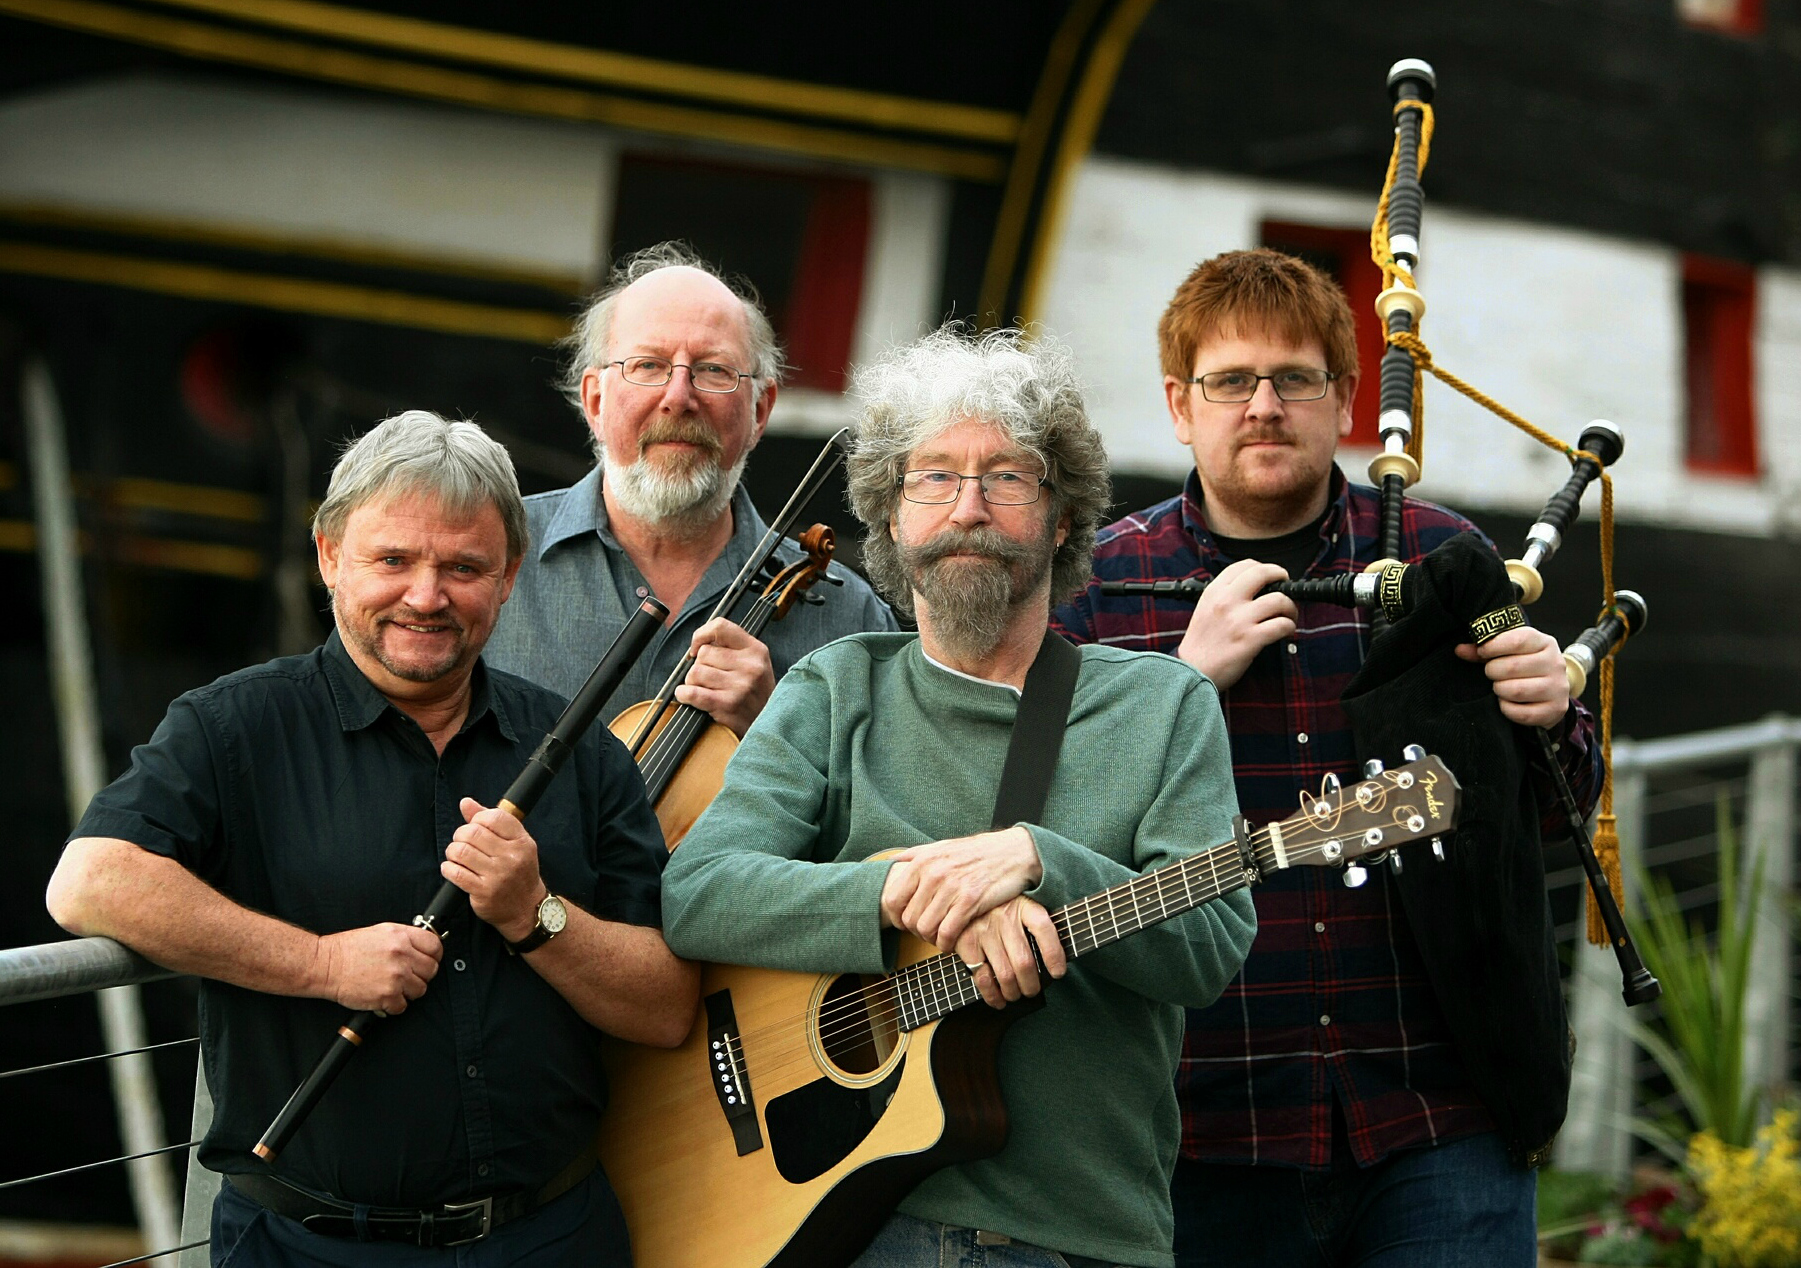 The Tannahill Weavers in concert at the Ram Club